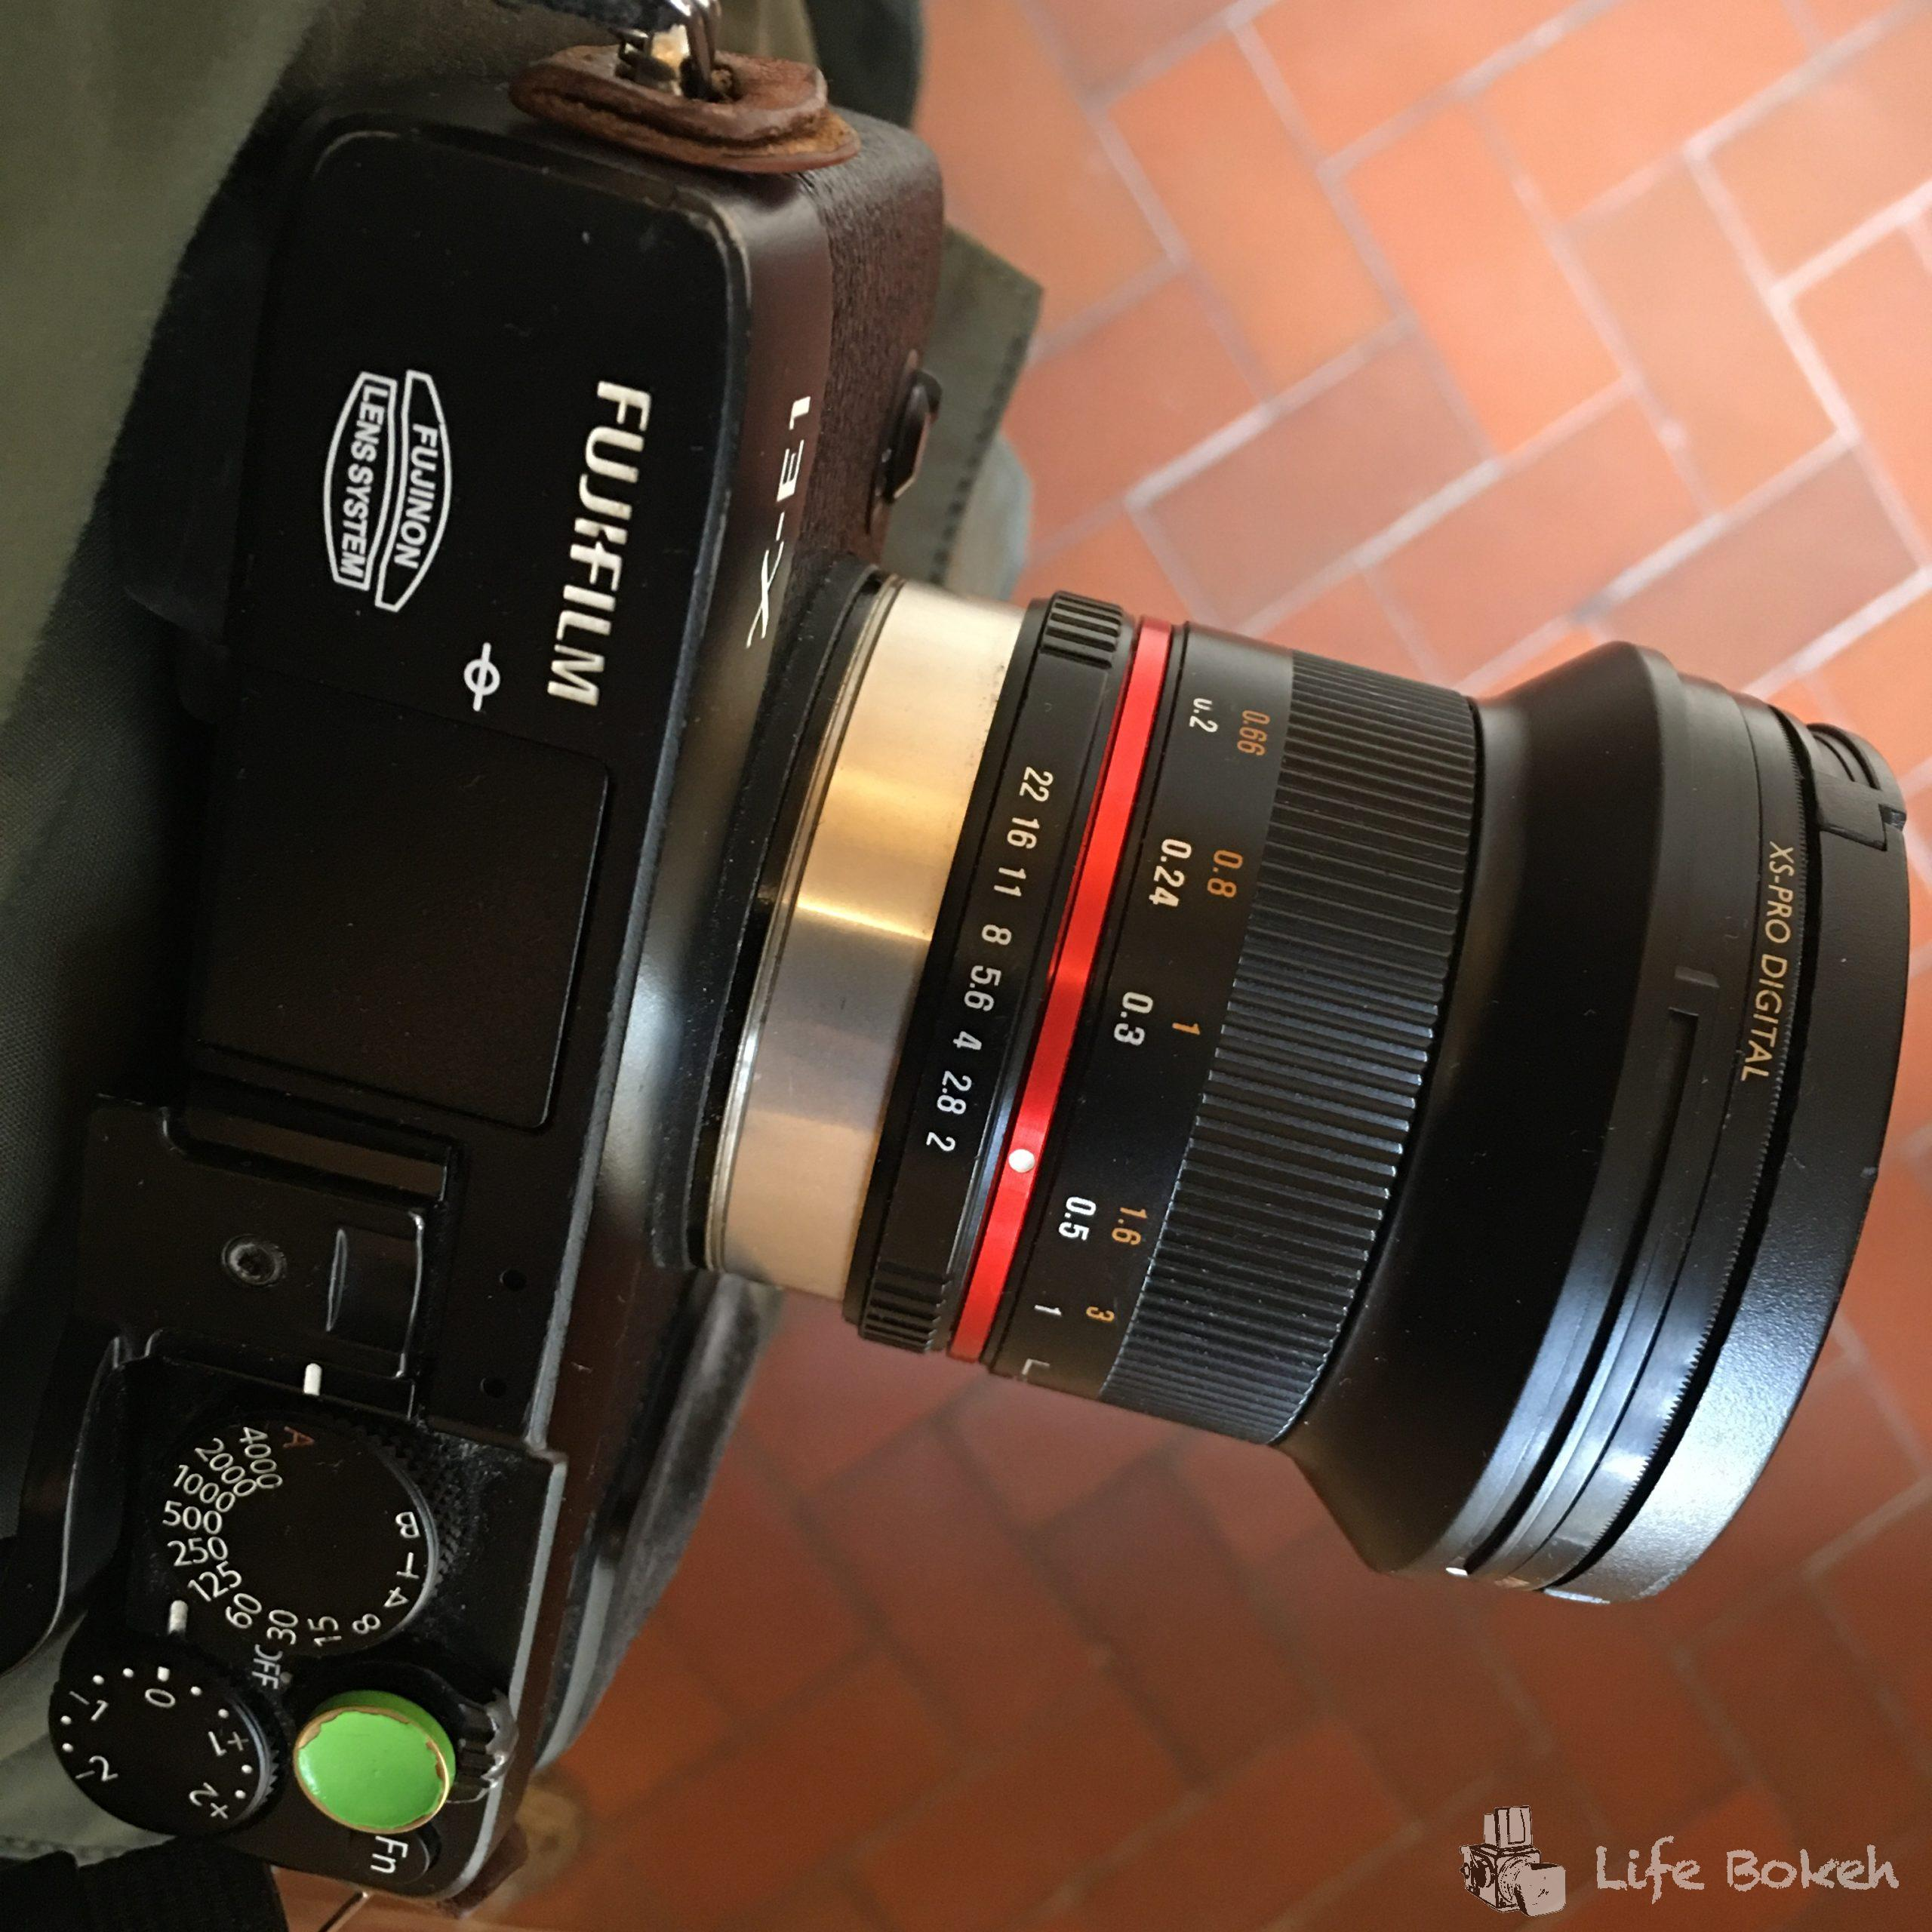 Here's my trusty Fujifilm X-E1 with Samyang 12mm F2 for Fujifilm X-mount